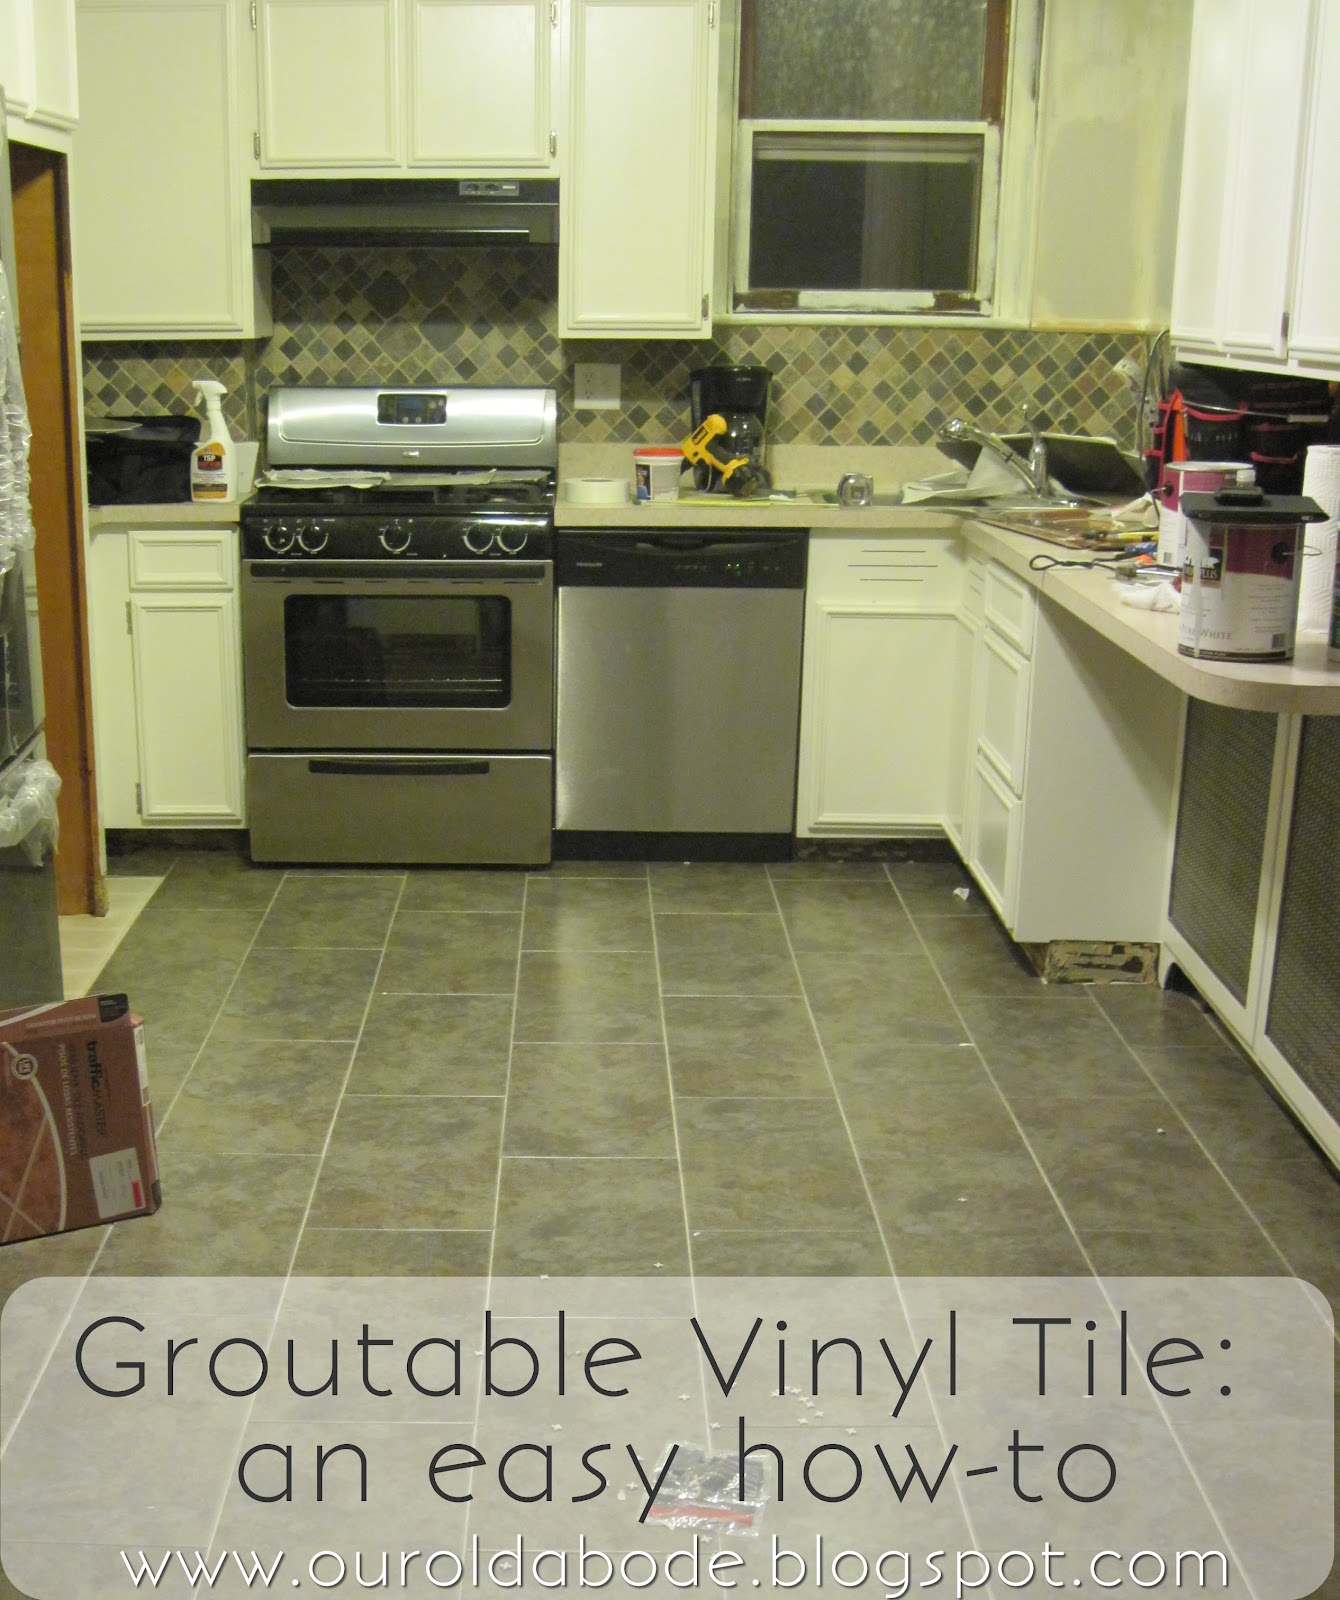 Our old abode kitchen floor groutable vinyl tile kitchen floor groutable vinyl tile dailygadgetfo Image collections